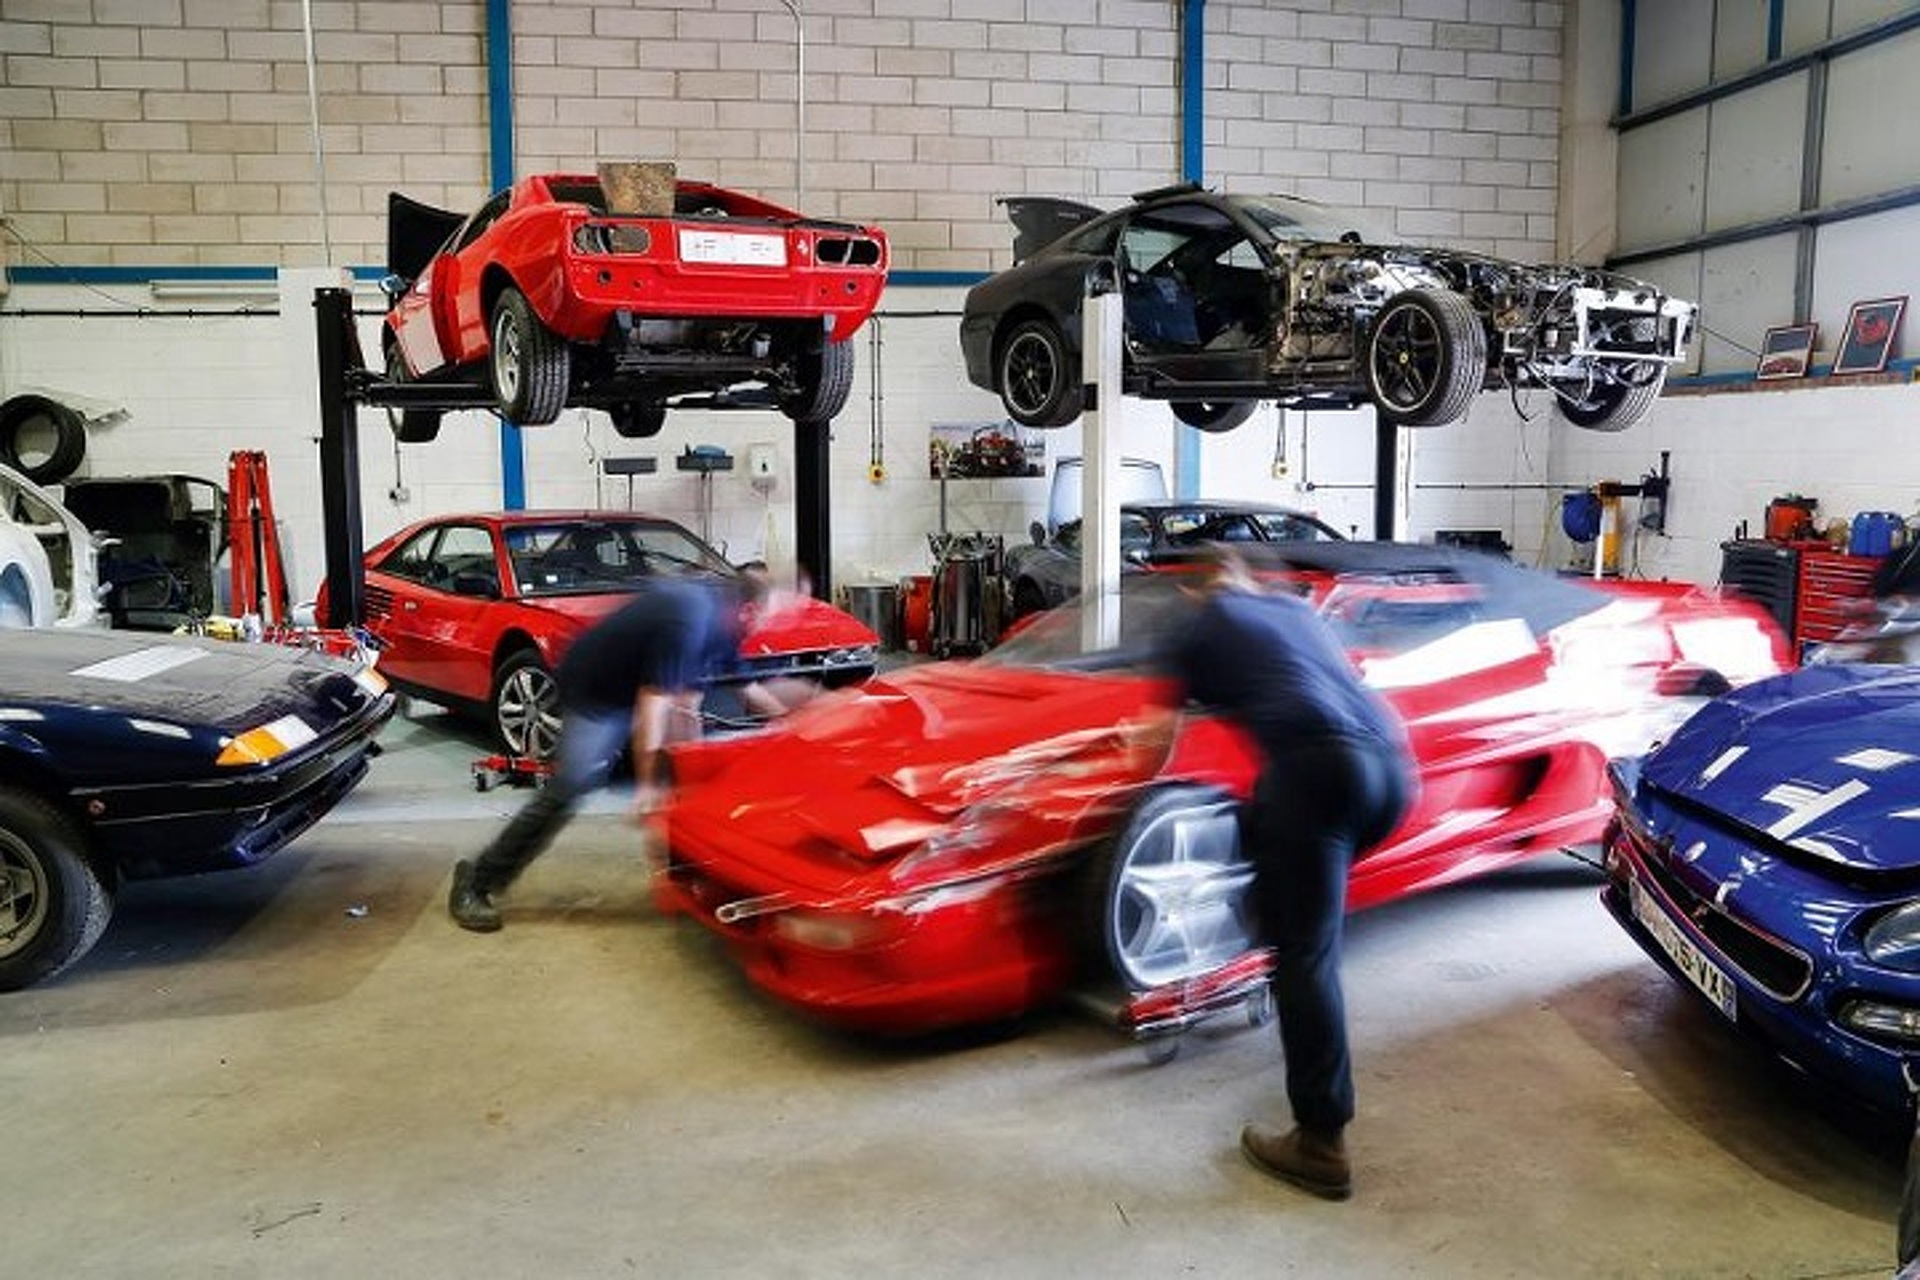 Where Do Supercars Go To Die?